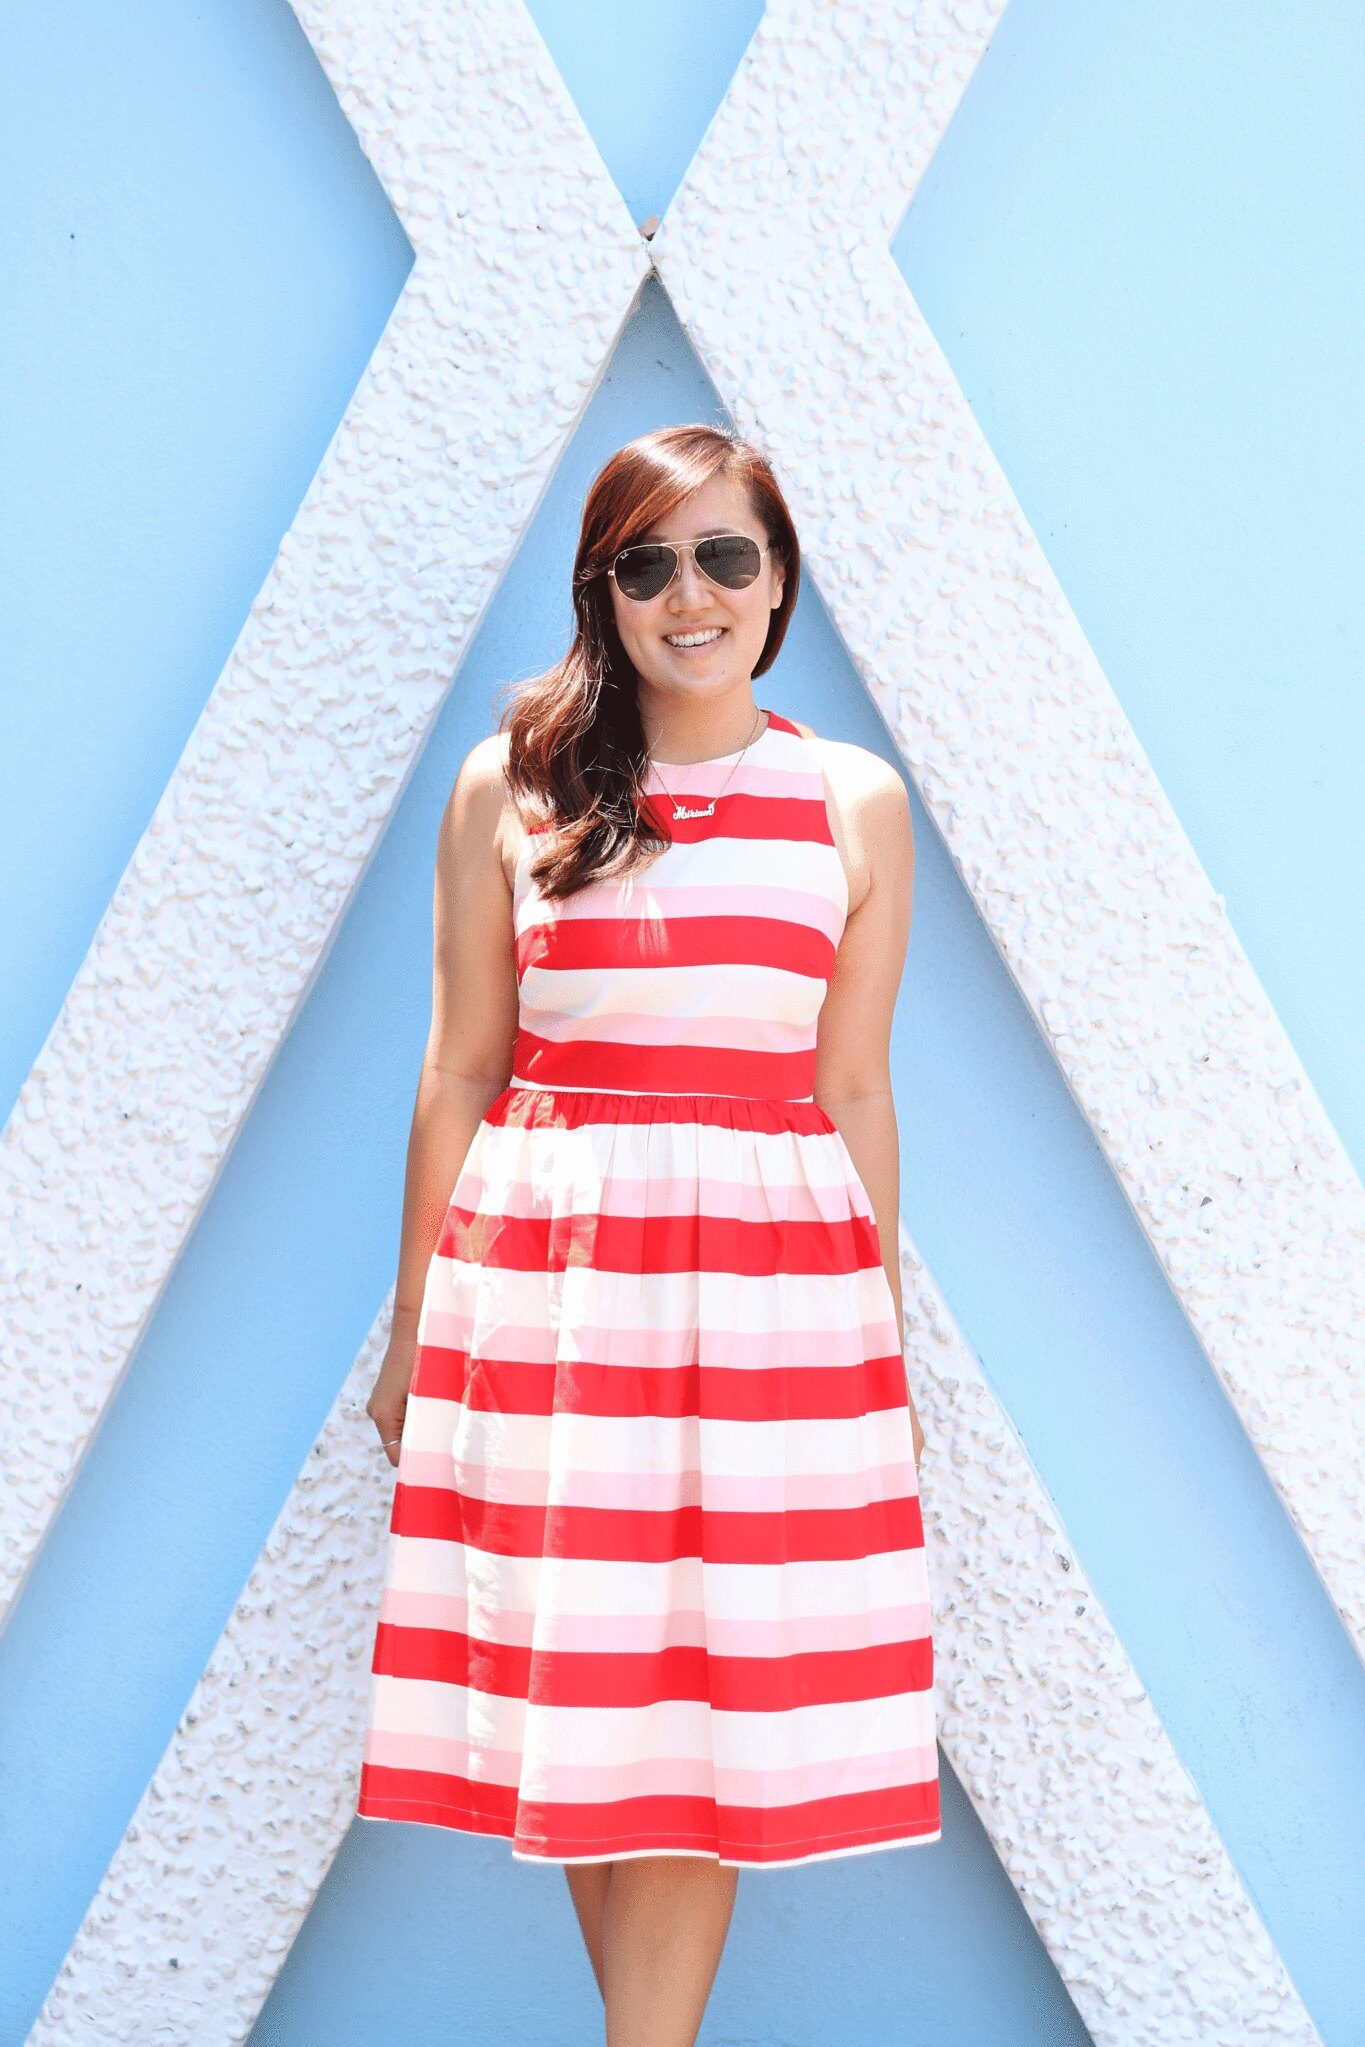 simplyxclassic, miriam gin, striped dress, red and pink striped dress, asos dress, fit and flare dress, minnie mouse ears, what to wear to disneyland, travel blogger, fashion blogger,